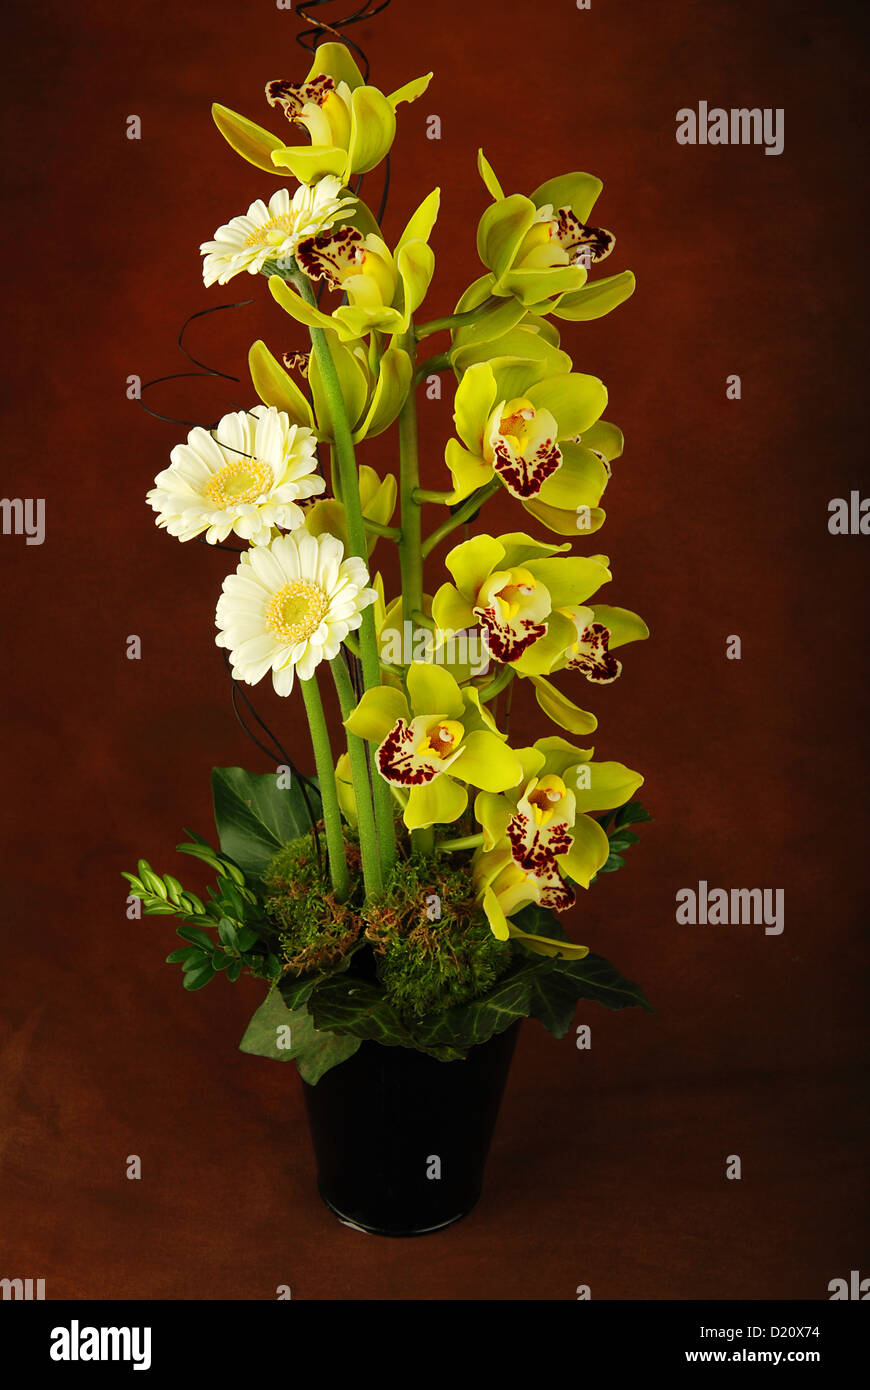 Brown And Yellow Living Room Decor: Brown And Yellow Orchid Stock Photos & Brown And Yellow